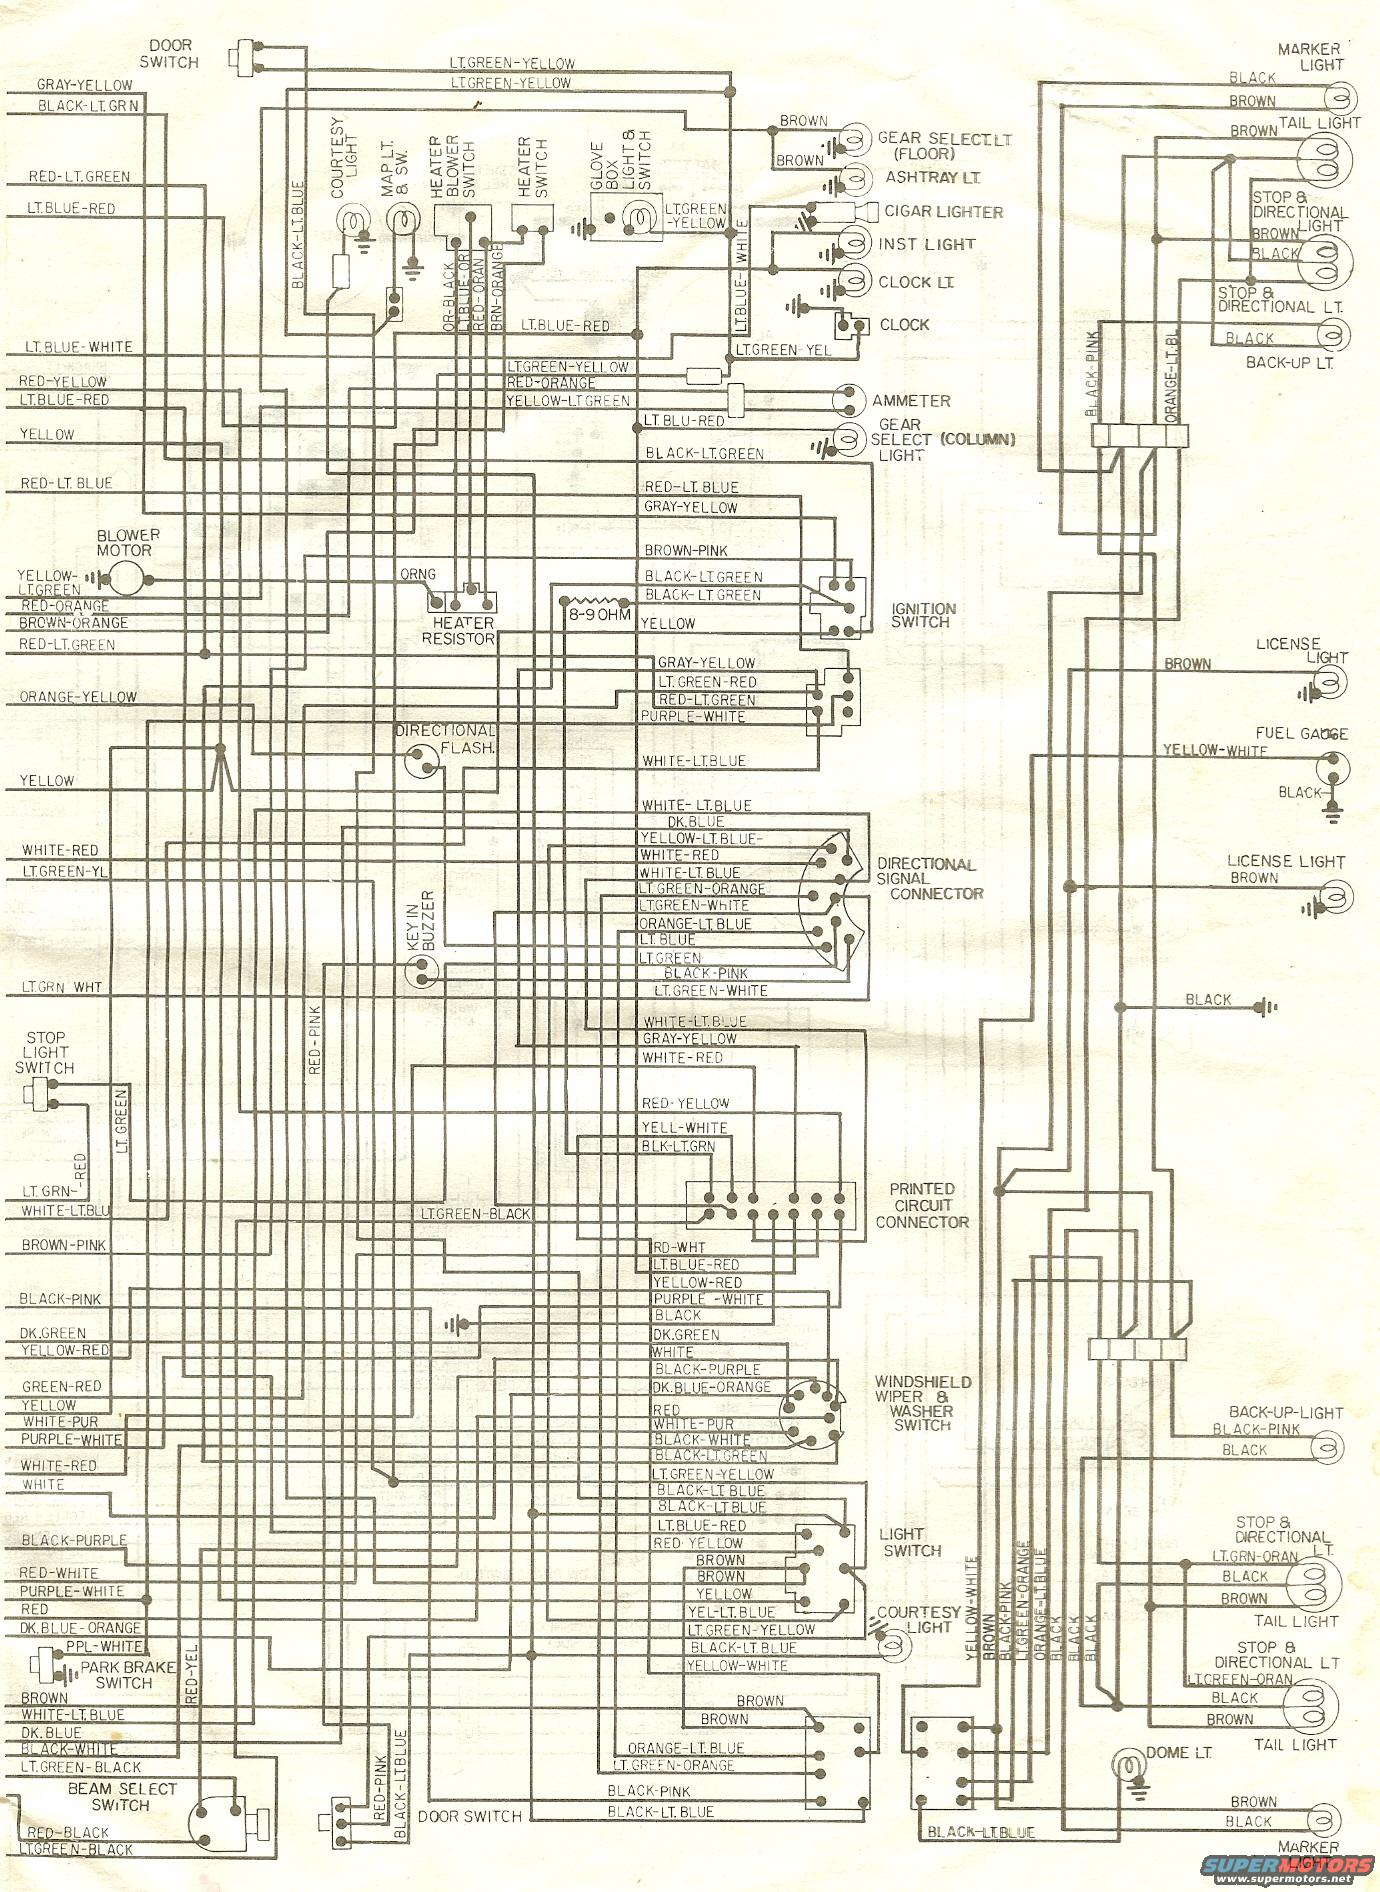 1976 ranchero wiring b 72 '76 wiring diagrams ranchero us 1976 ford torino wiring diagram at bakdesigns.co